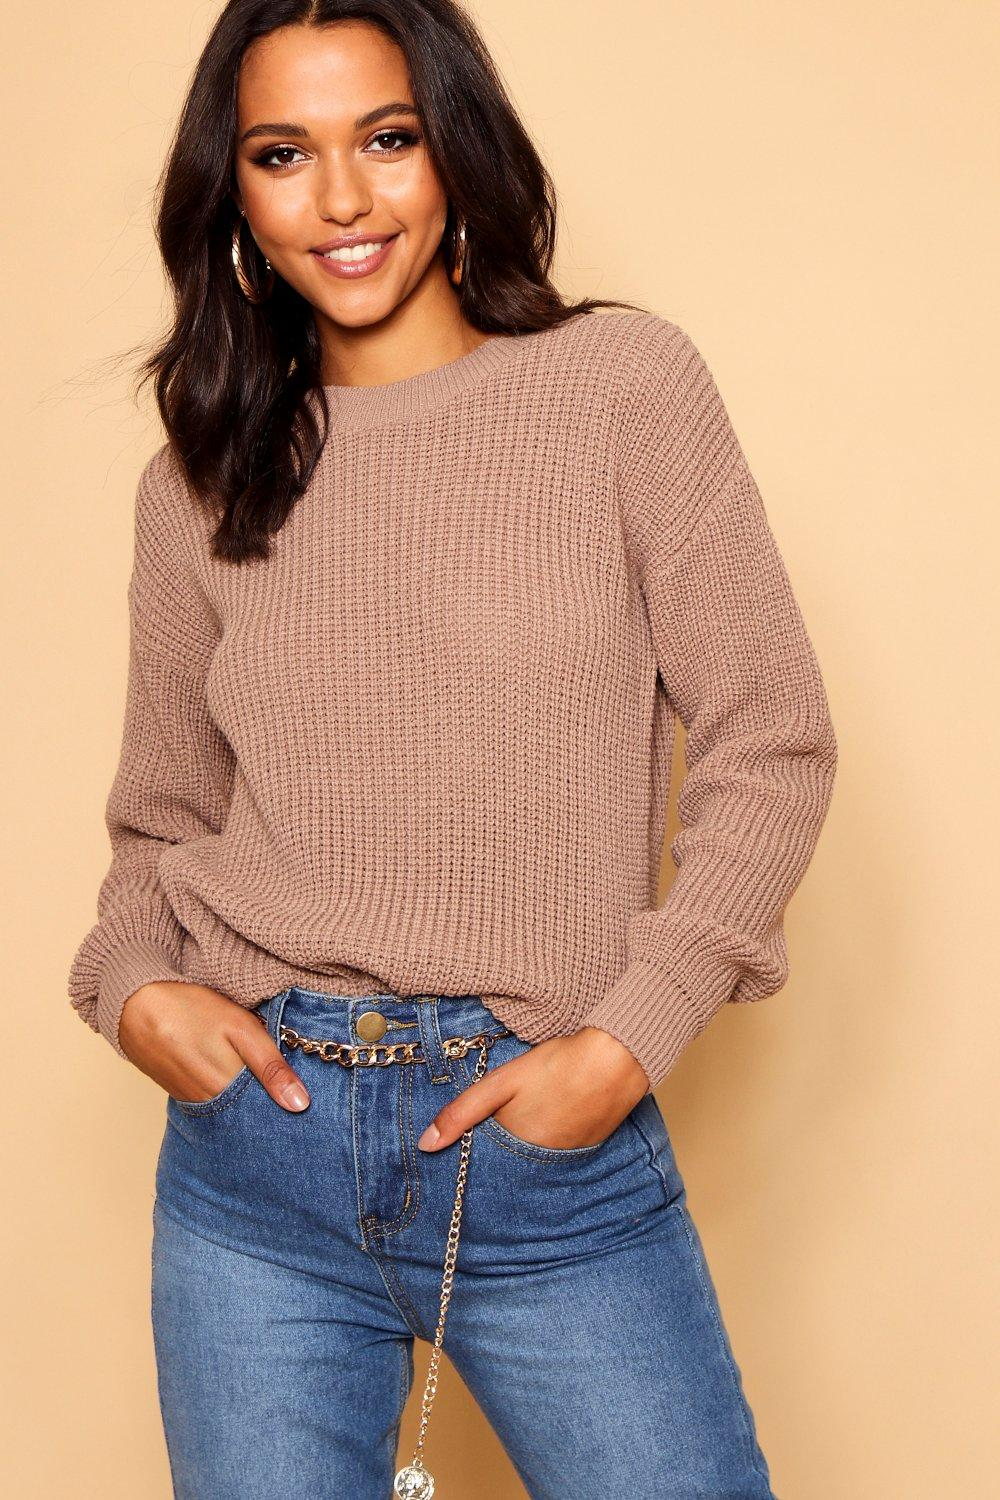 Womens Oversized-Pullover - Taupe - M, Taupe - Boohoo.com